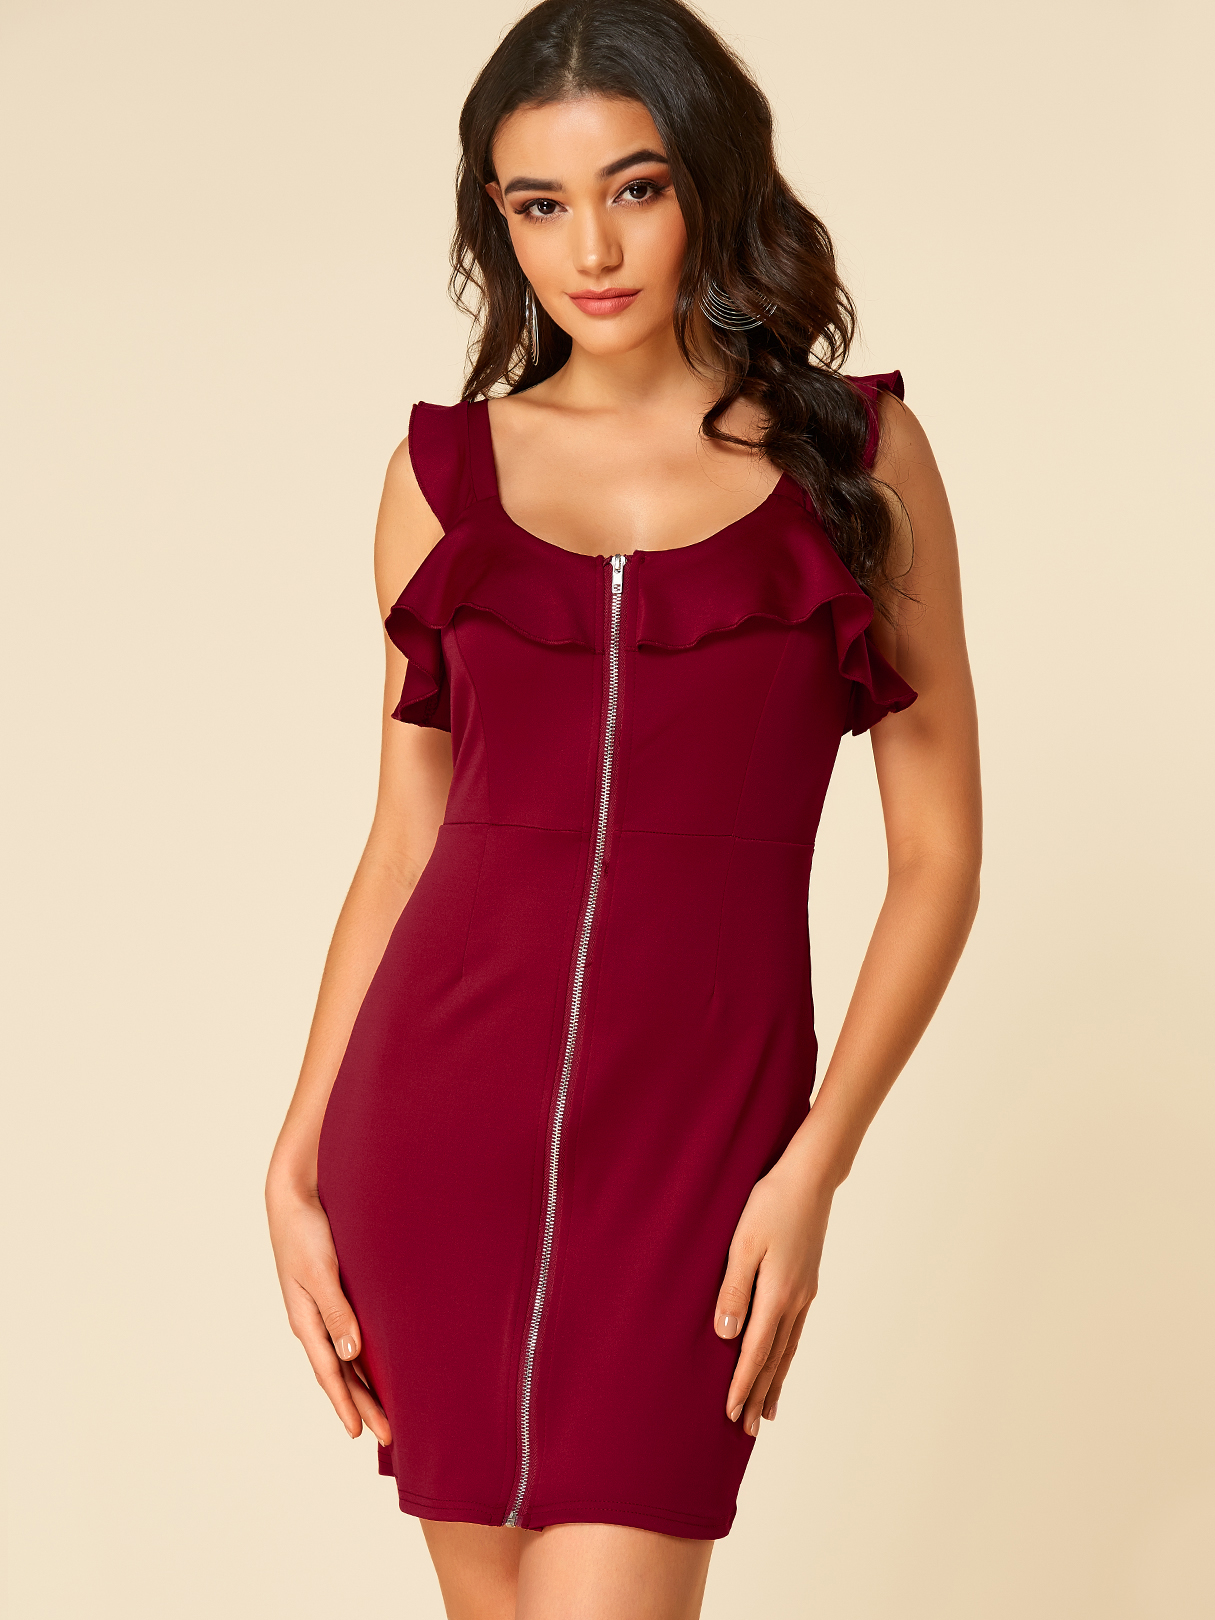 Burgundy Zip Front Flounce Details Bodycon Dress